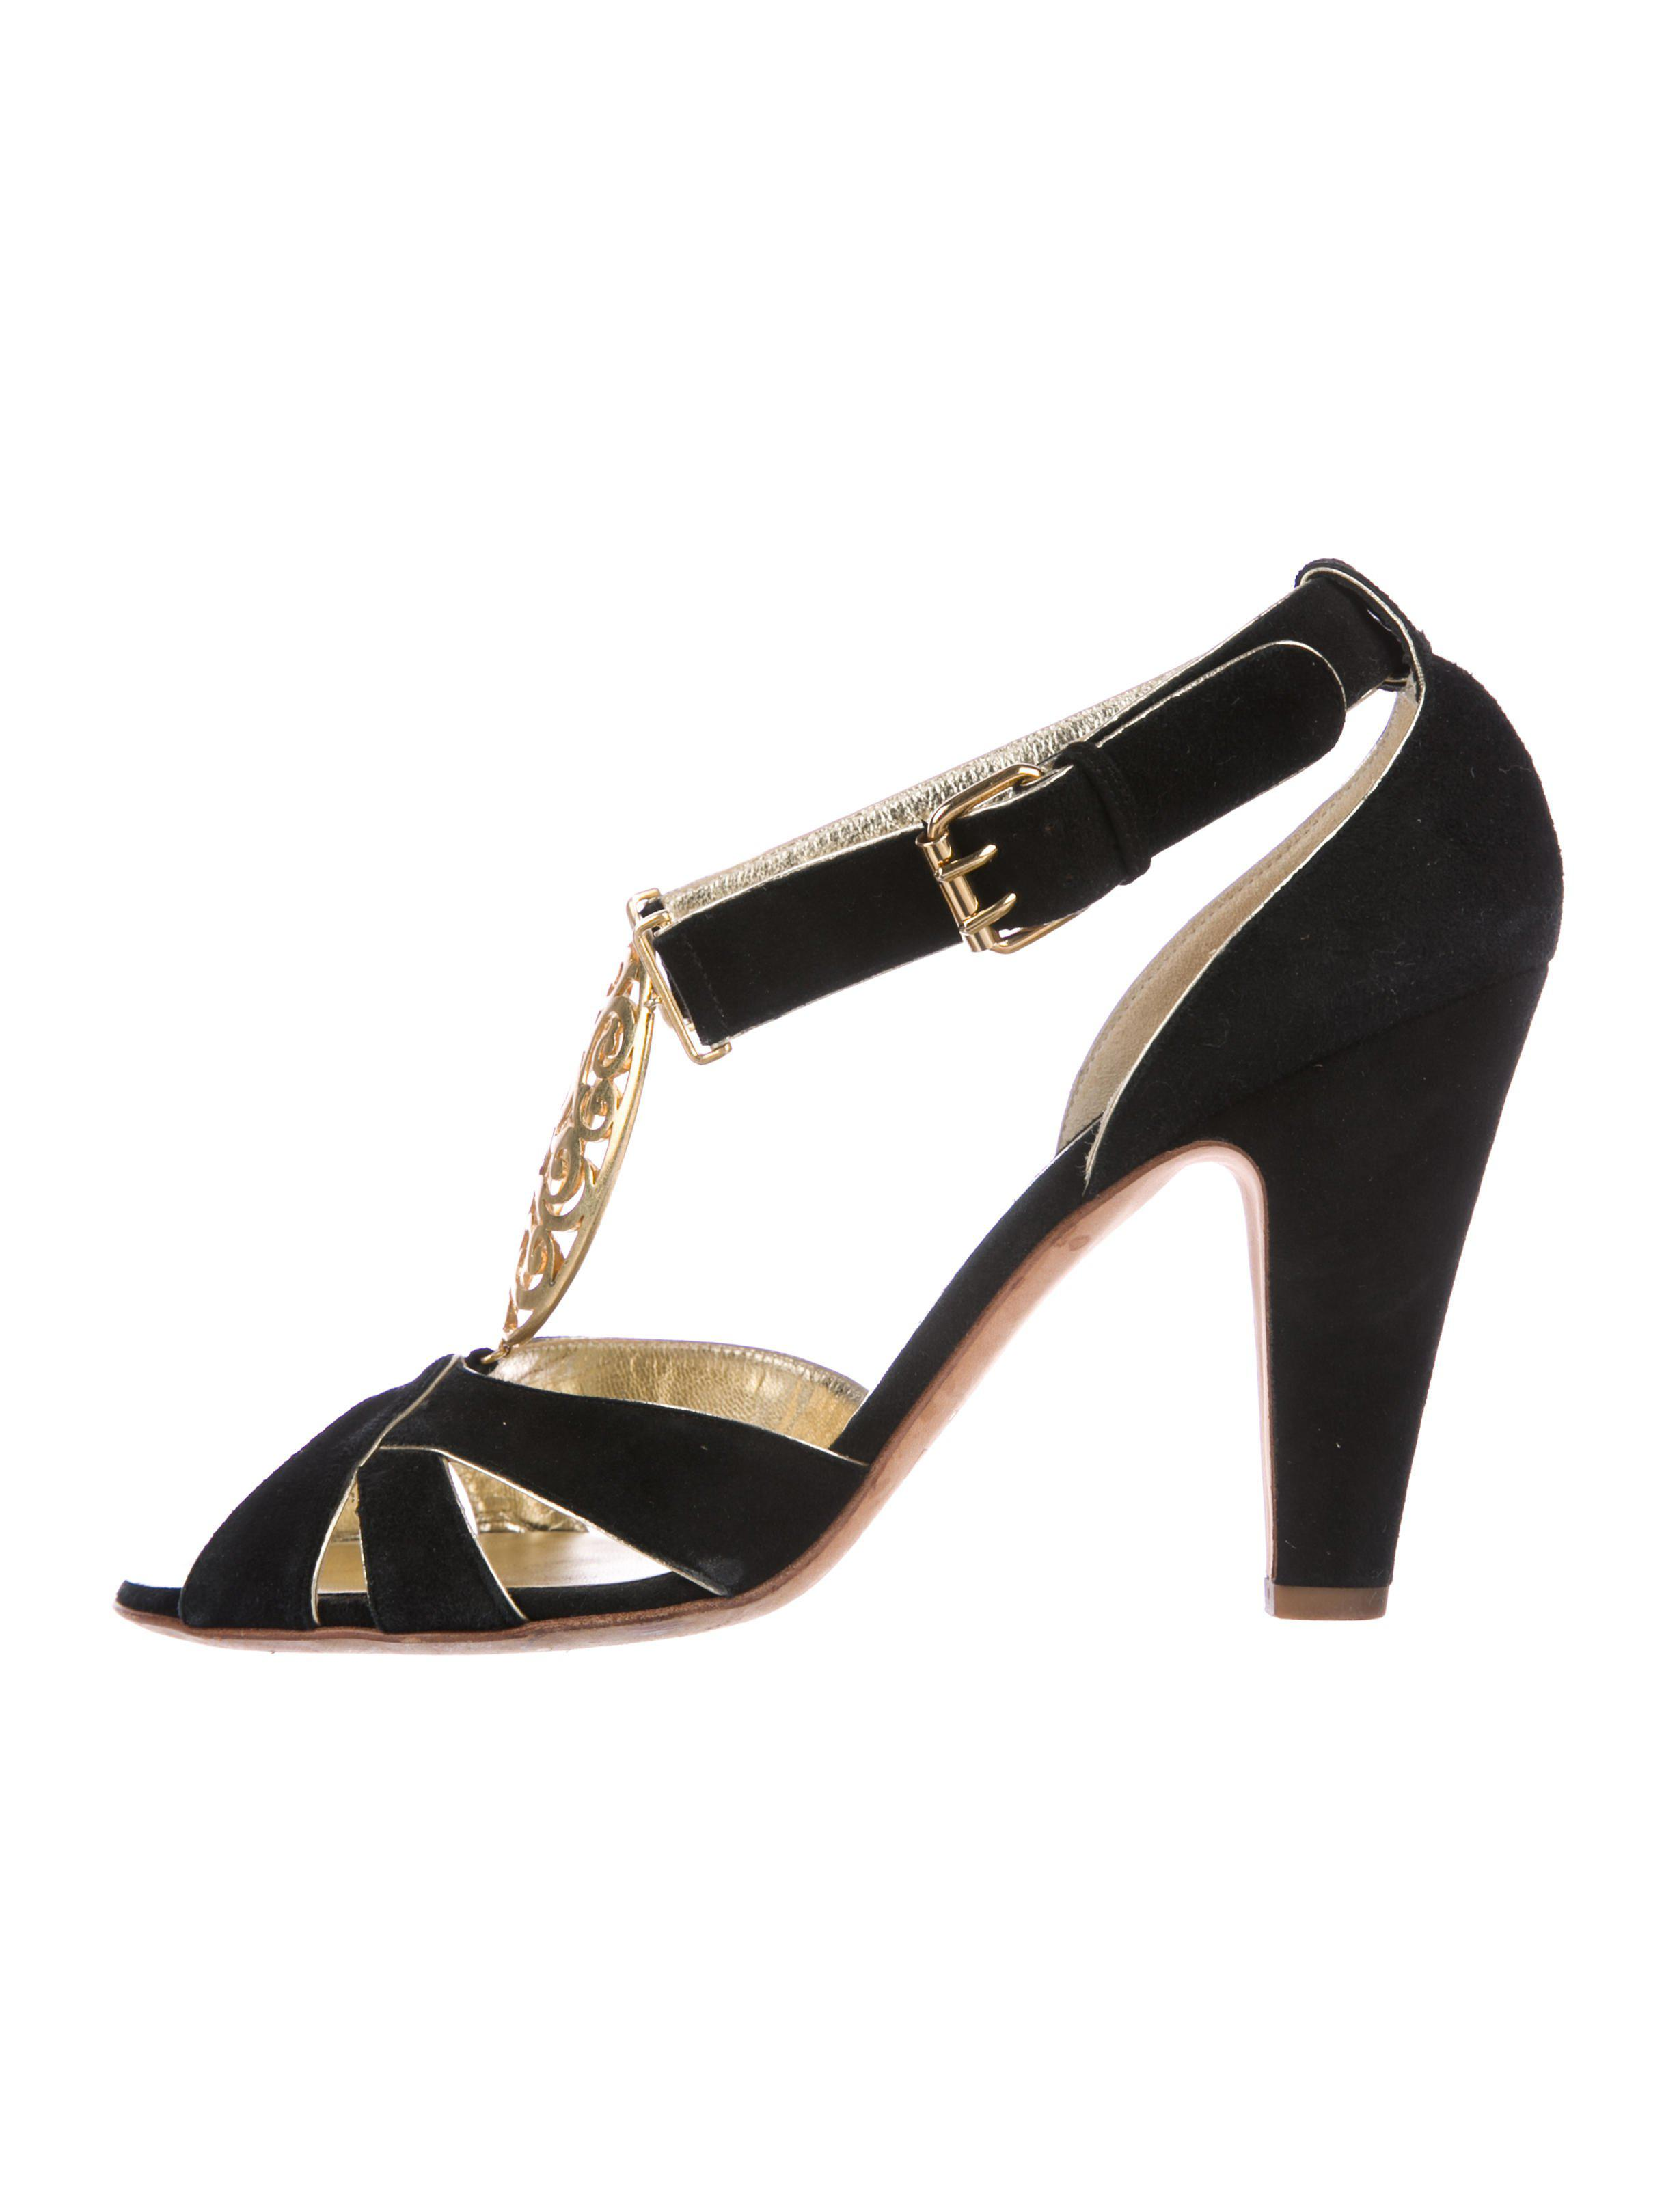 794bd4069ed Lyst - Giuseppe Zanotti Embellished Suede Sandals Black in Metallic